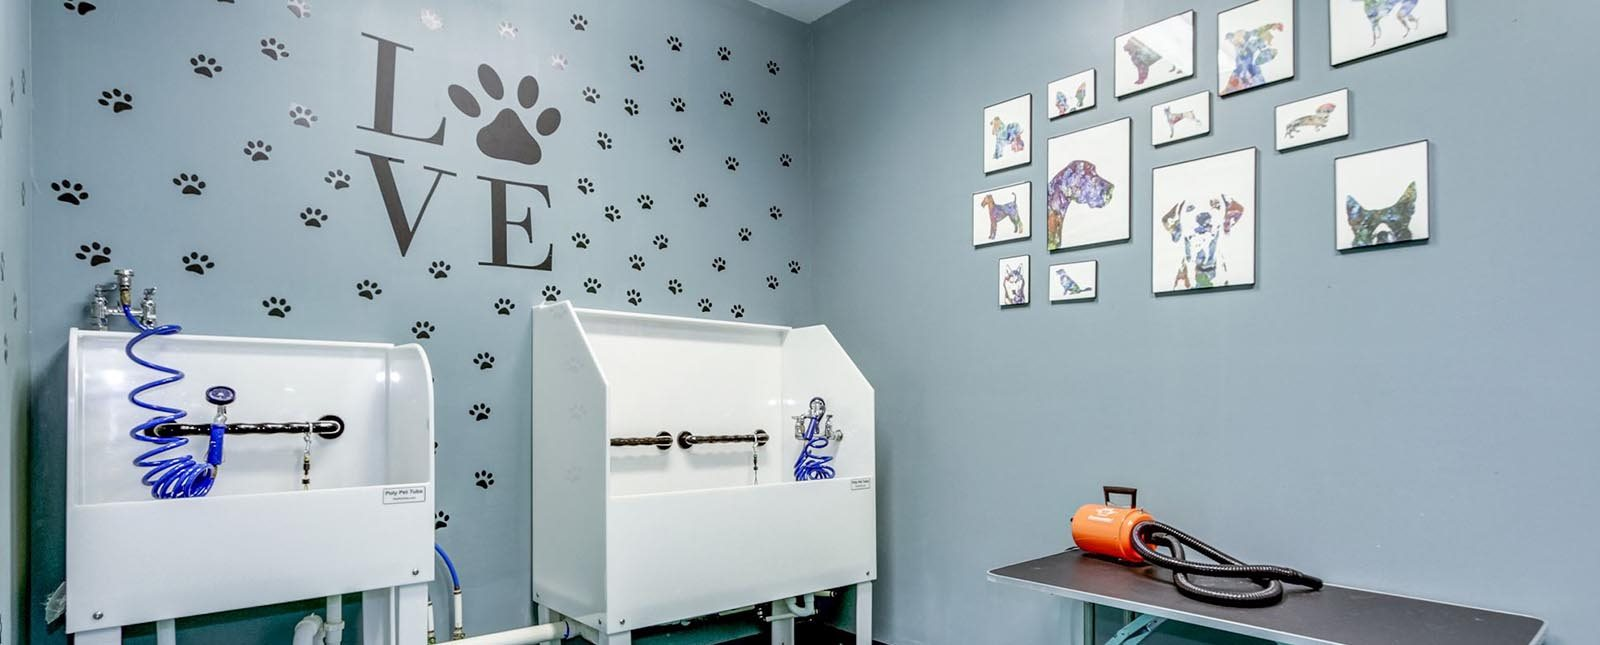 Pet Spa at The Haven luxury apartments in Malvern, PA